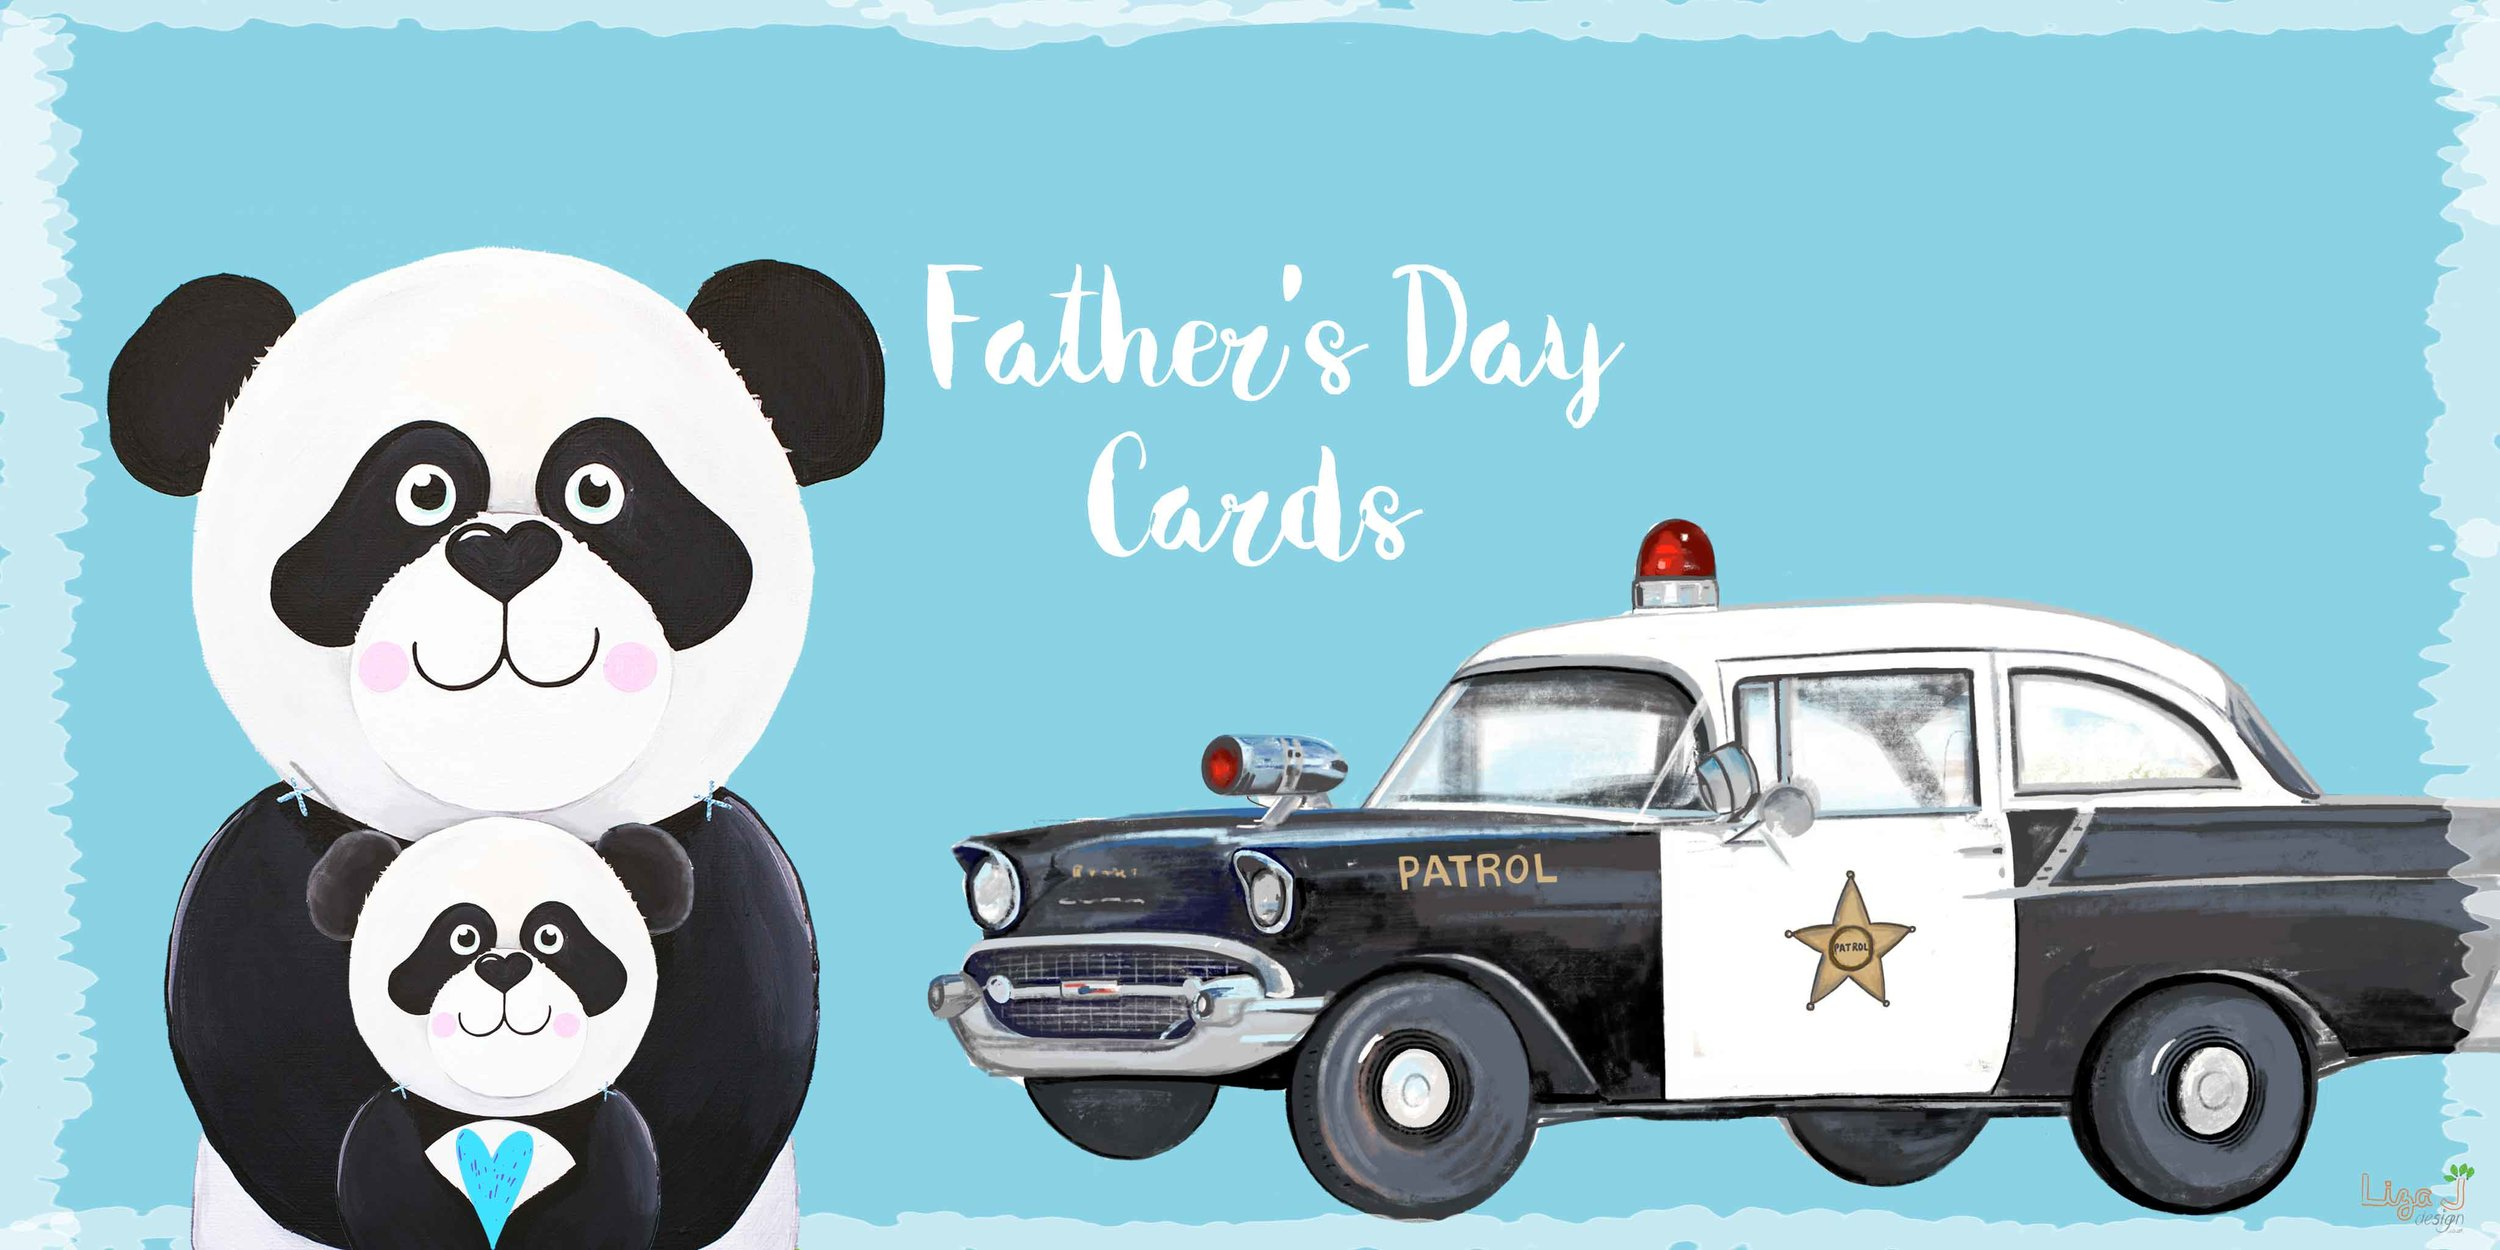 Father's Day Shop Open - From panda's to vintage vehicles explore our characters in the Father's Day range, perfect for a dad's first Father's Day and grandpa's too.